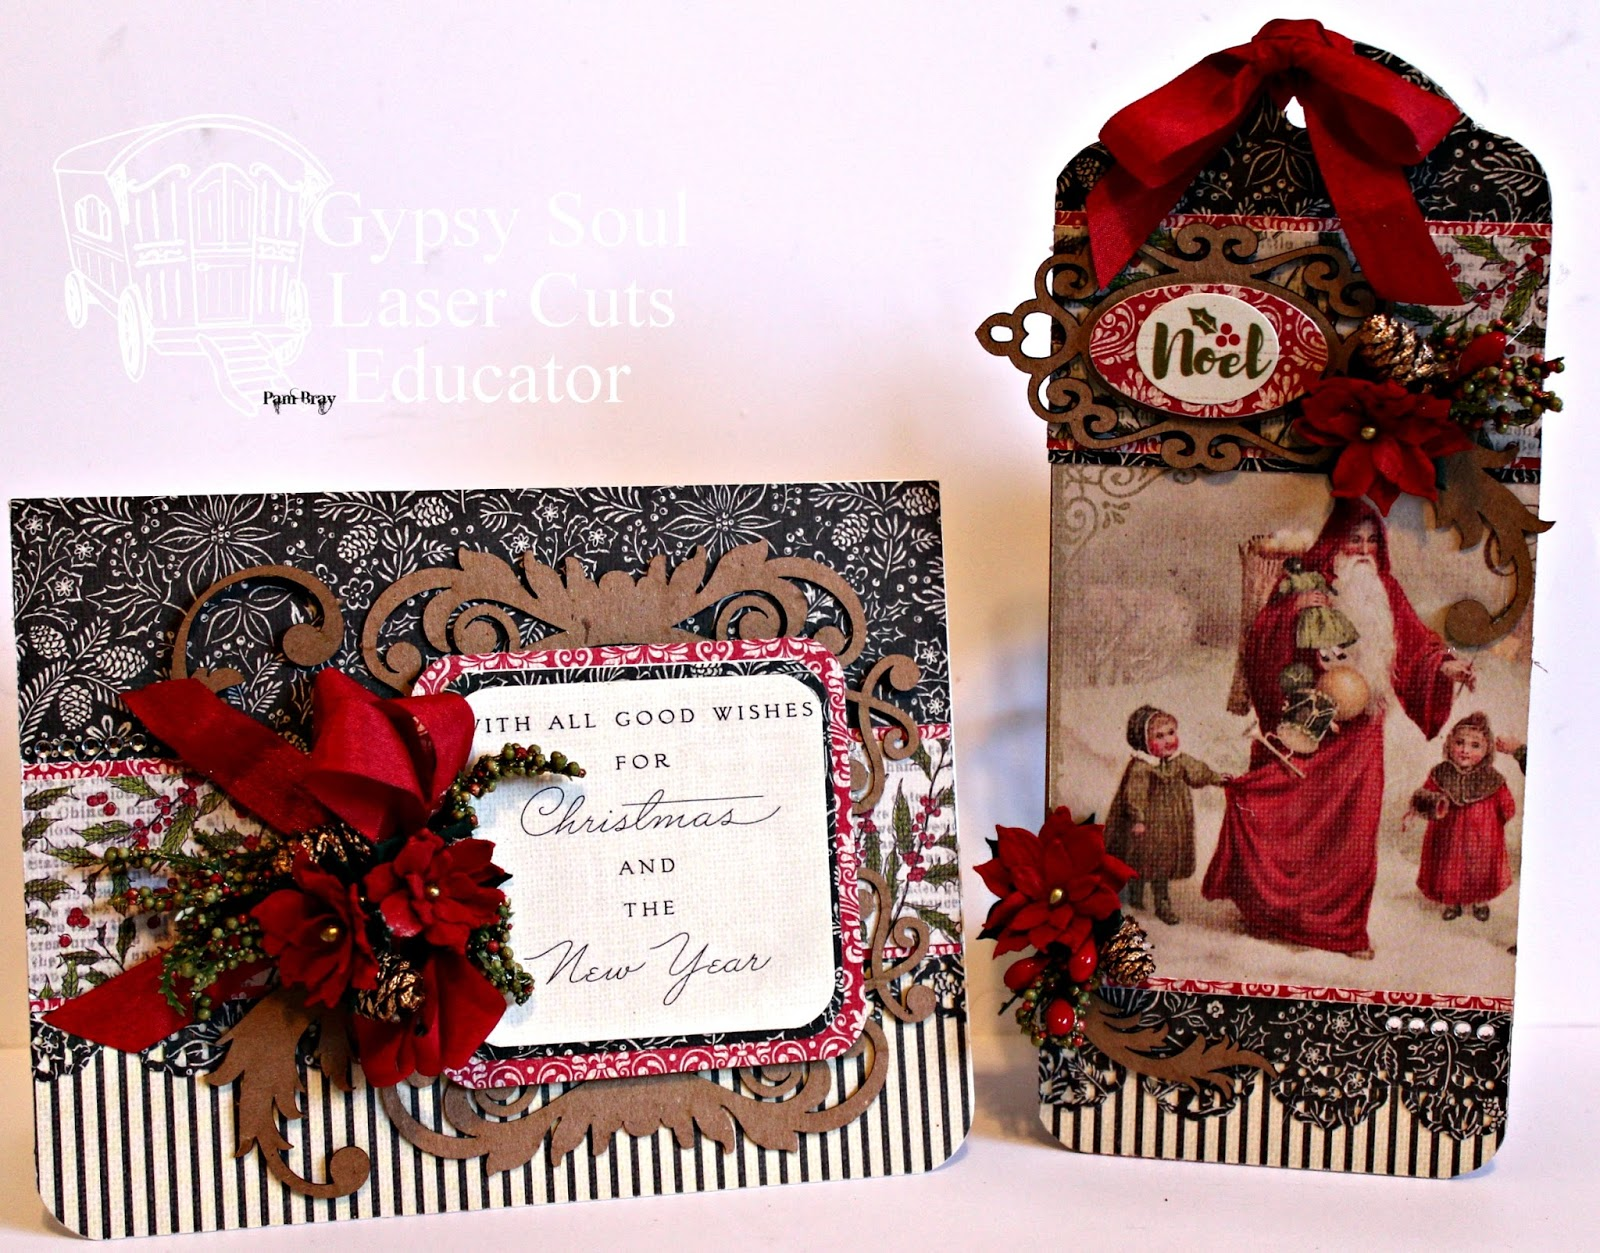 Gypsy Soul Laser Cuts Christmas Card and Tag e Design Two Ways